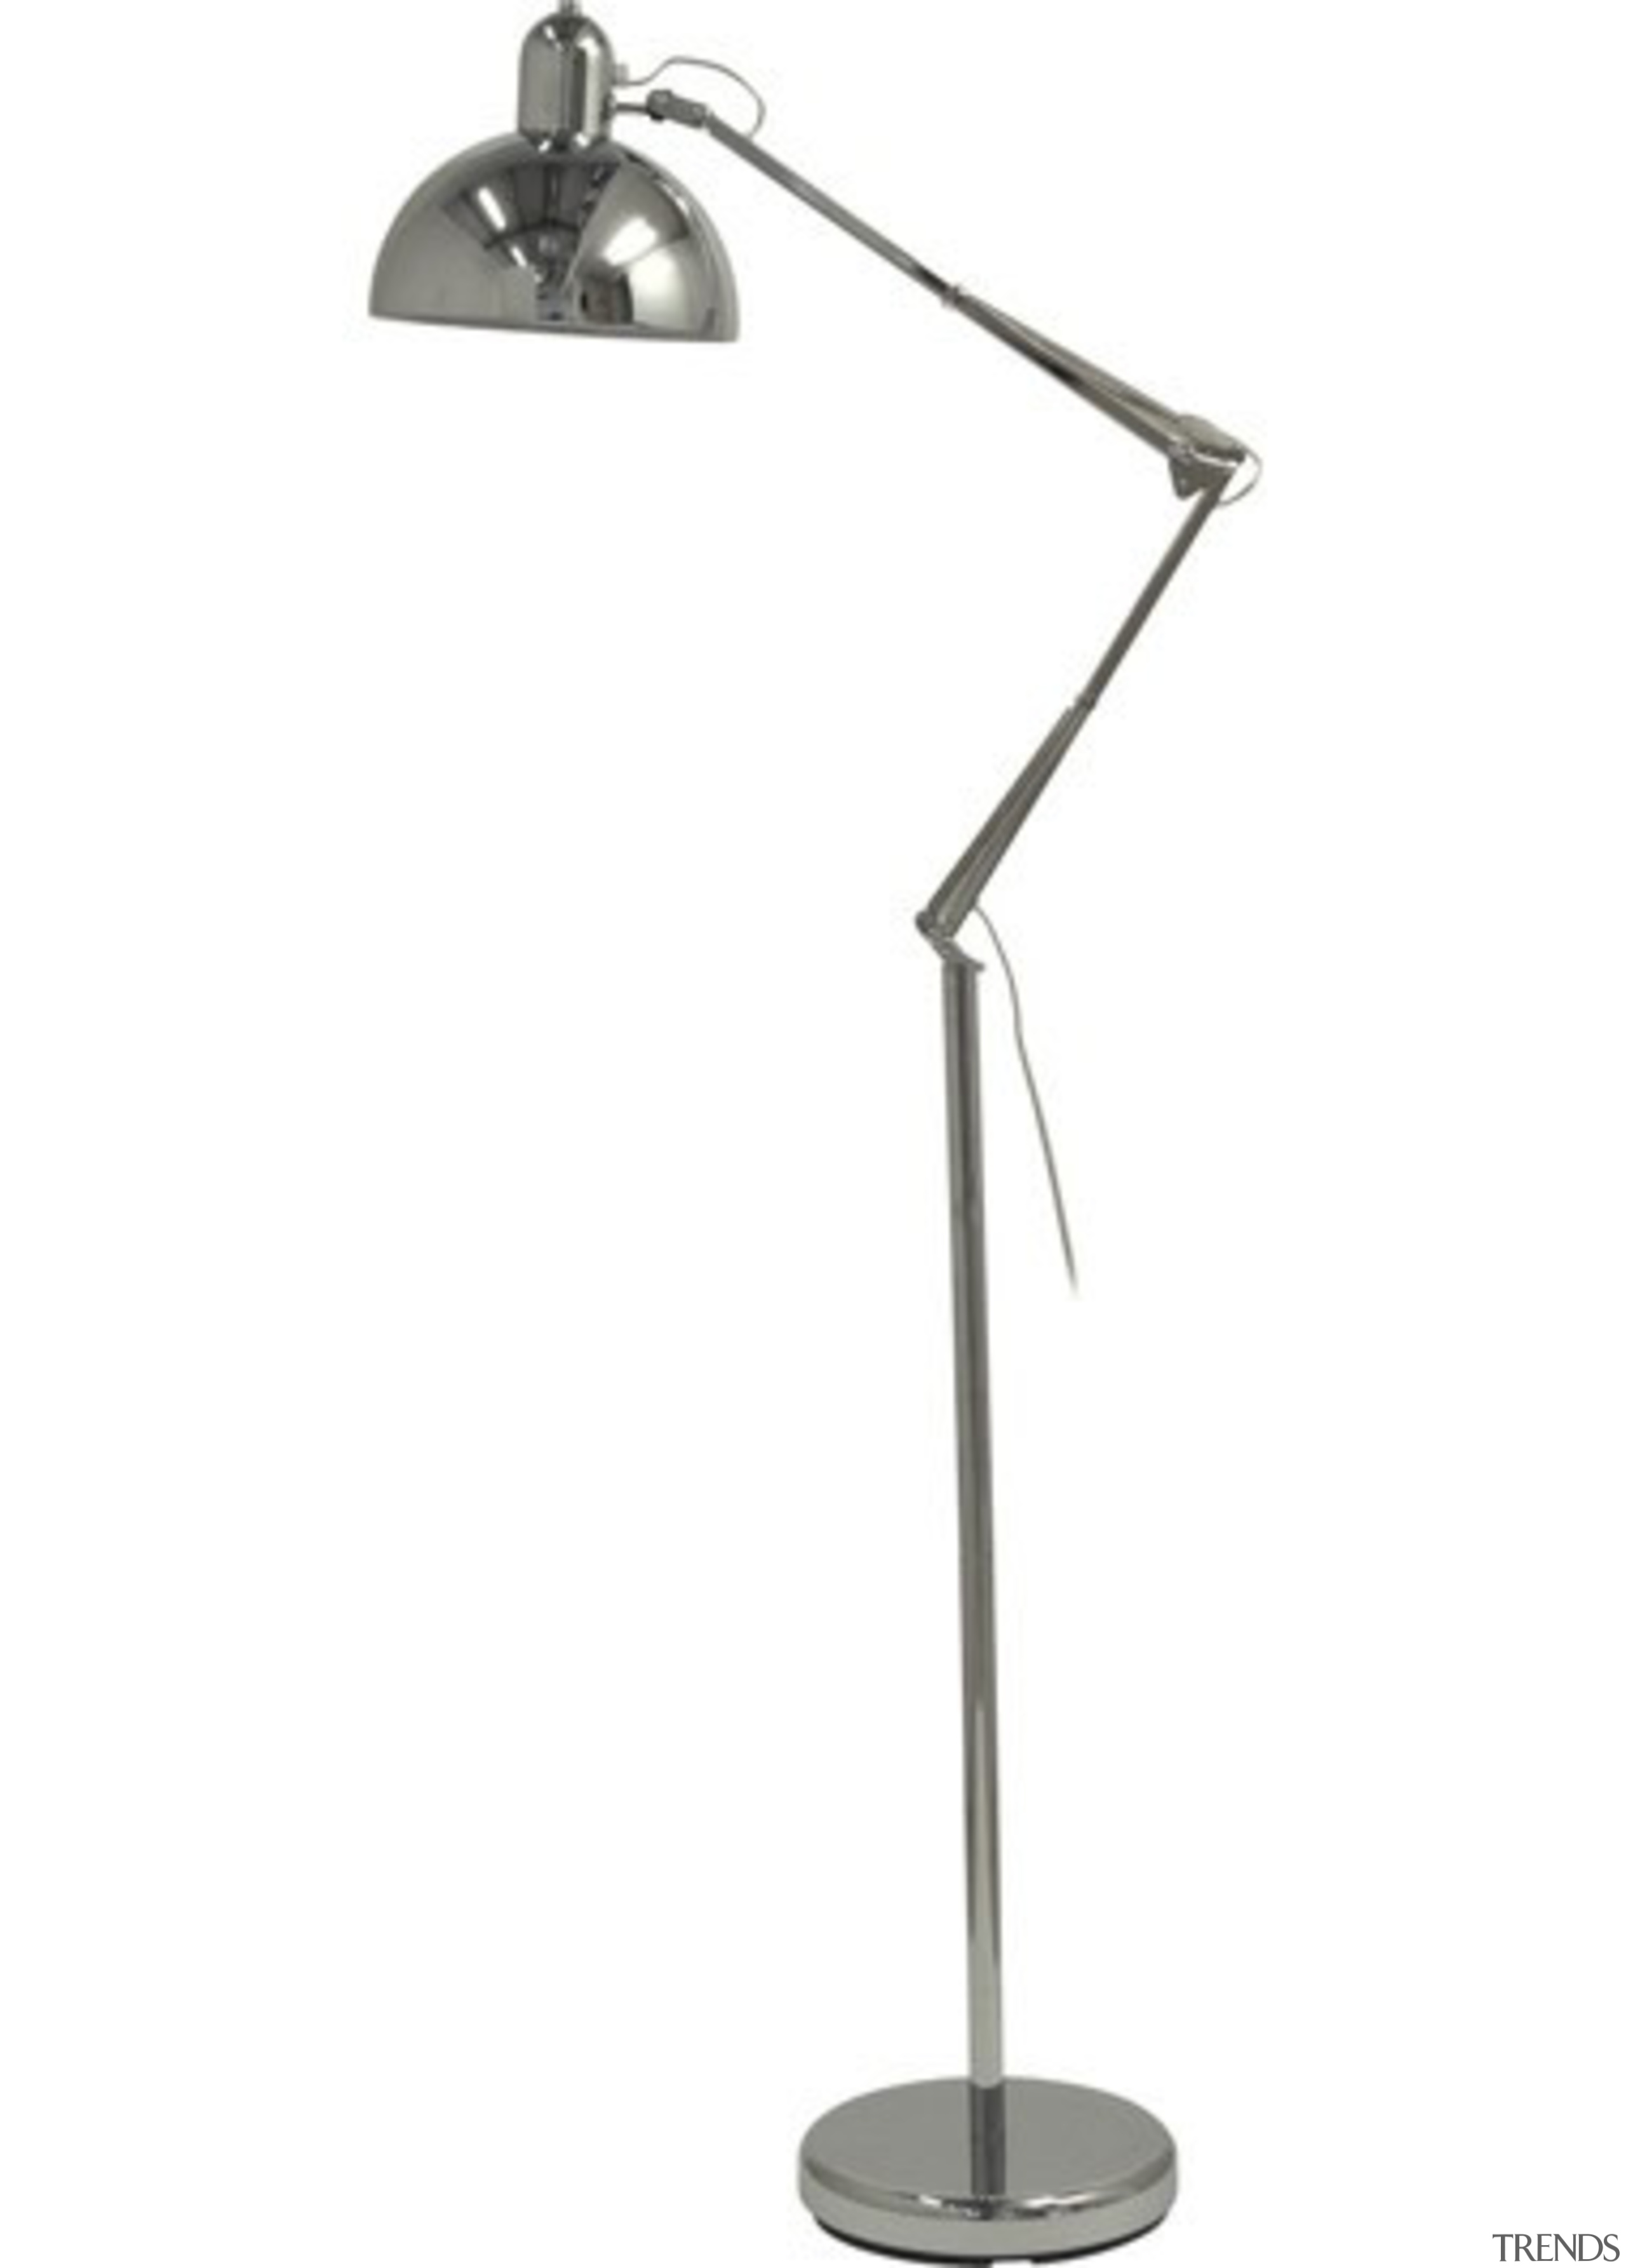 FeaturesThe Bianca is a classic yet contemporary designer ceiling fixture, light fixture, lighting, product design, white